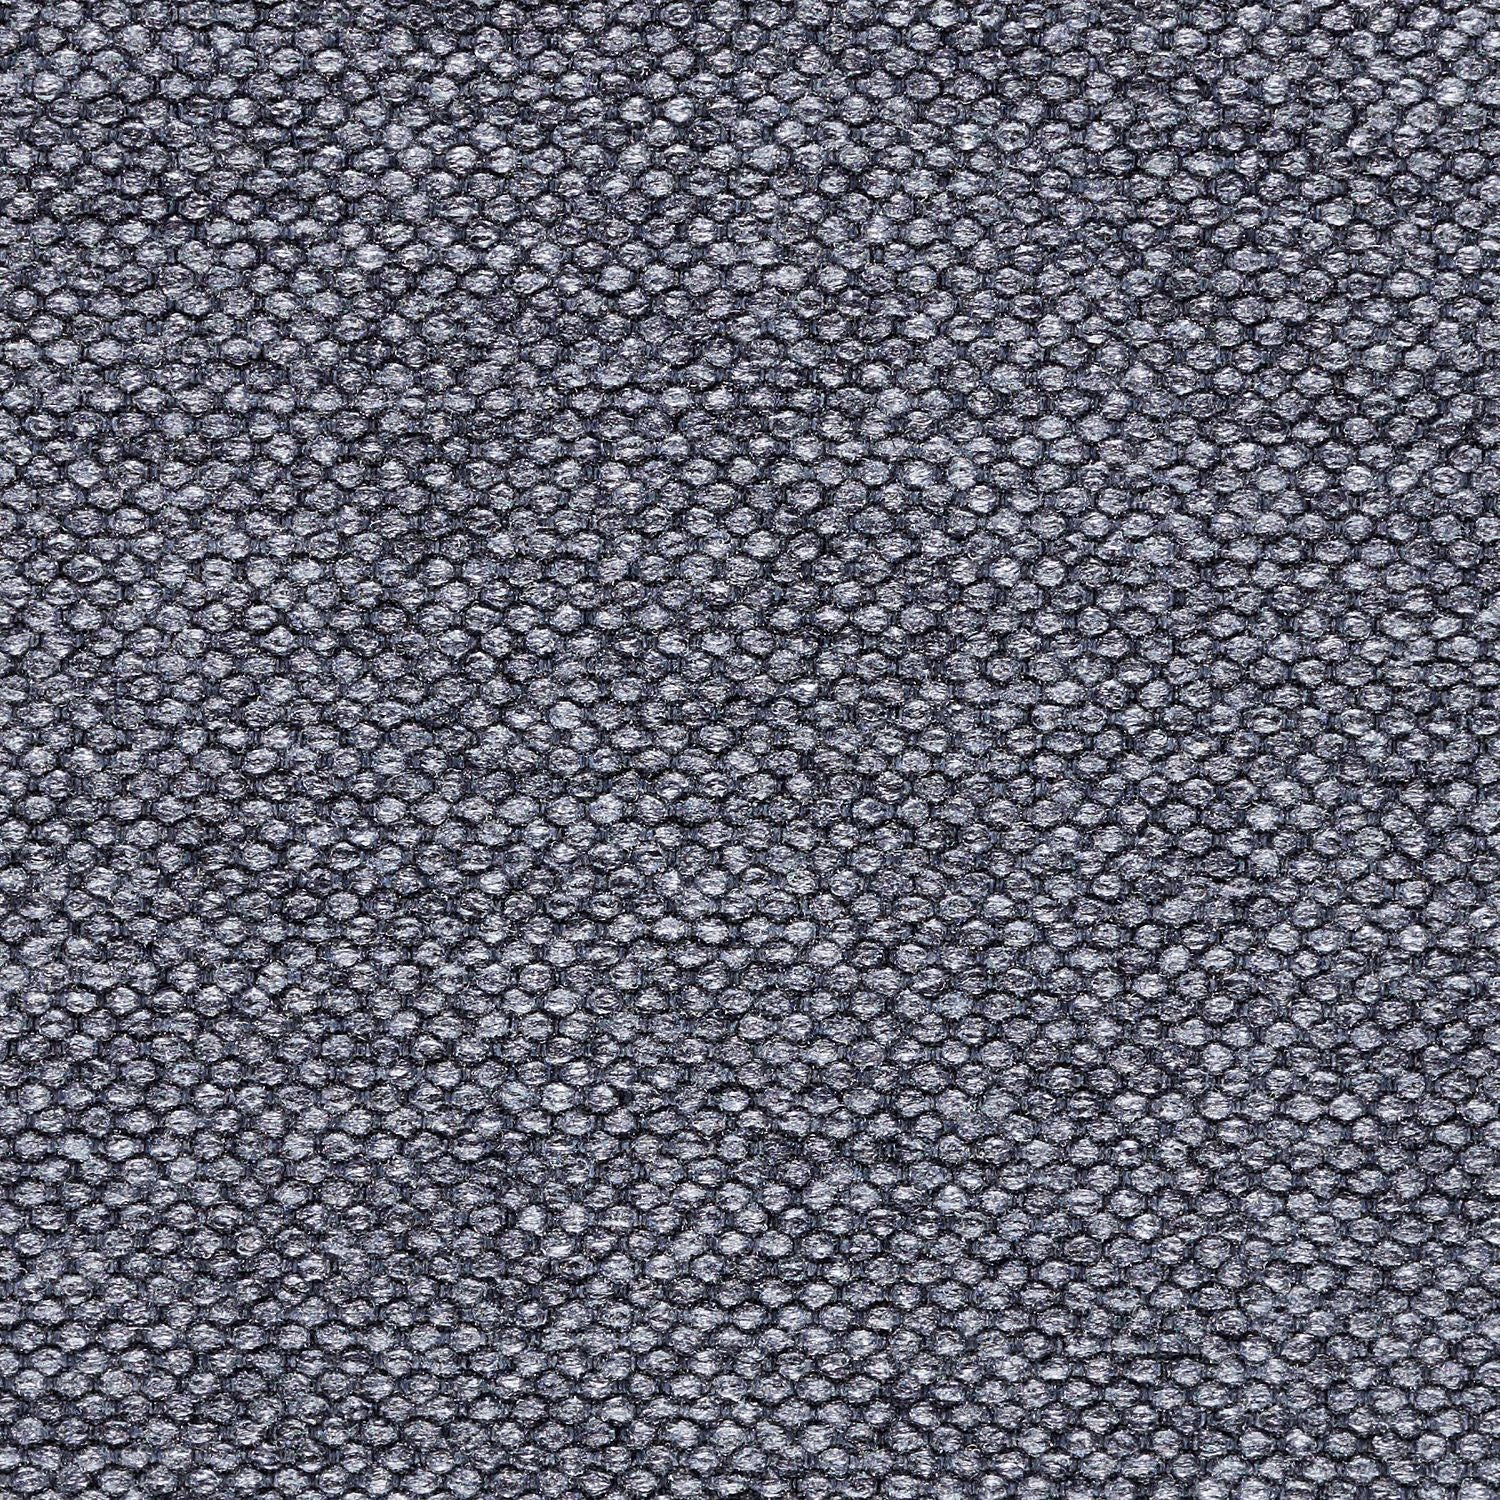 Digi Tweed - North Sea Tweed - 4058 - 22